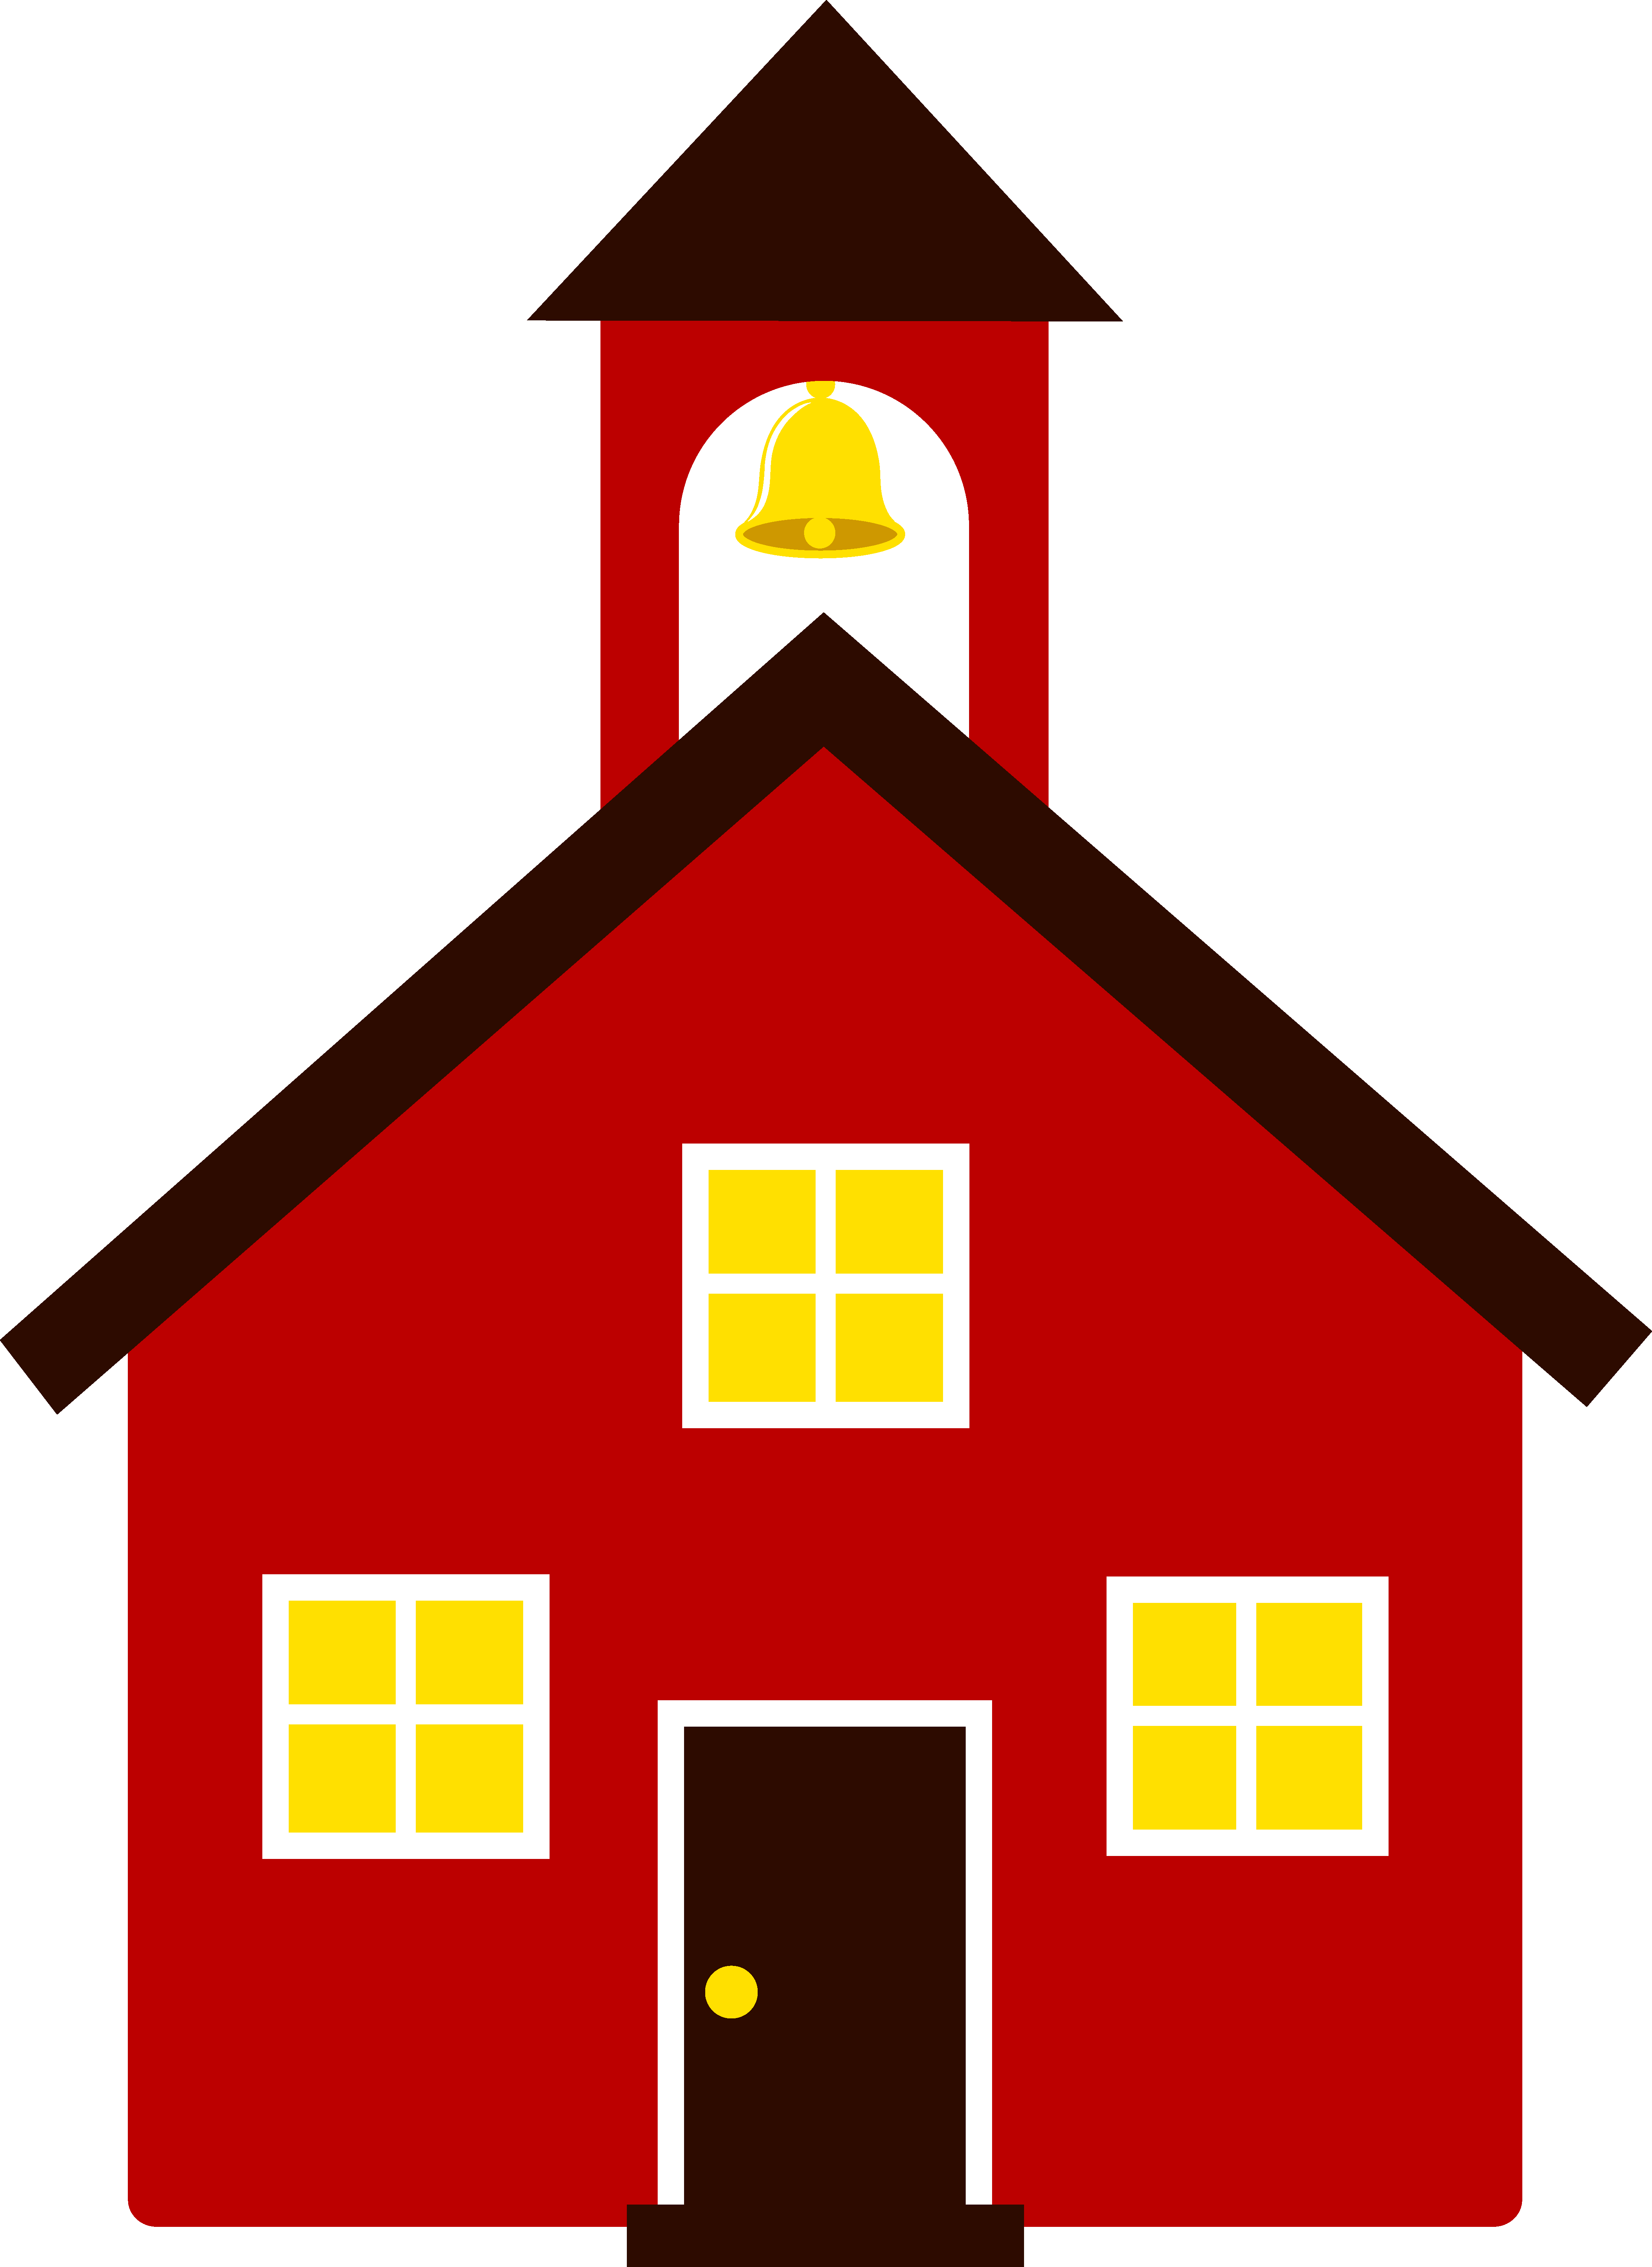 School house clipart best for Best old school house